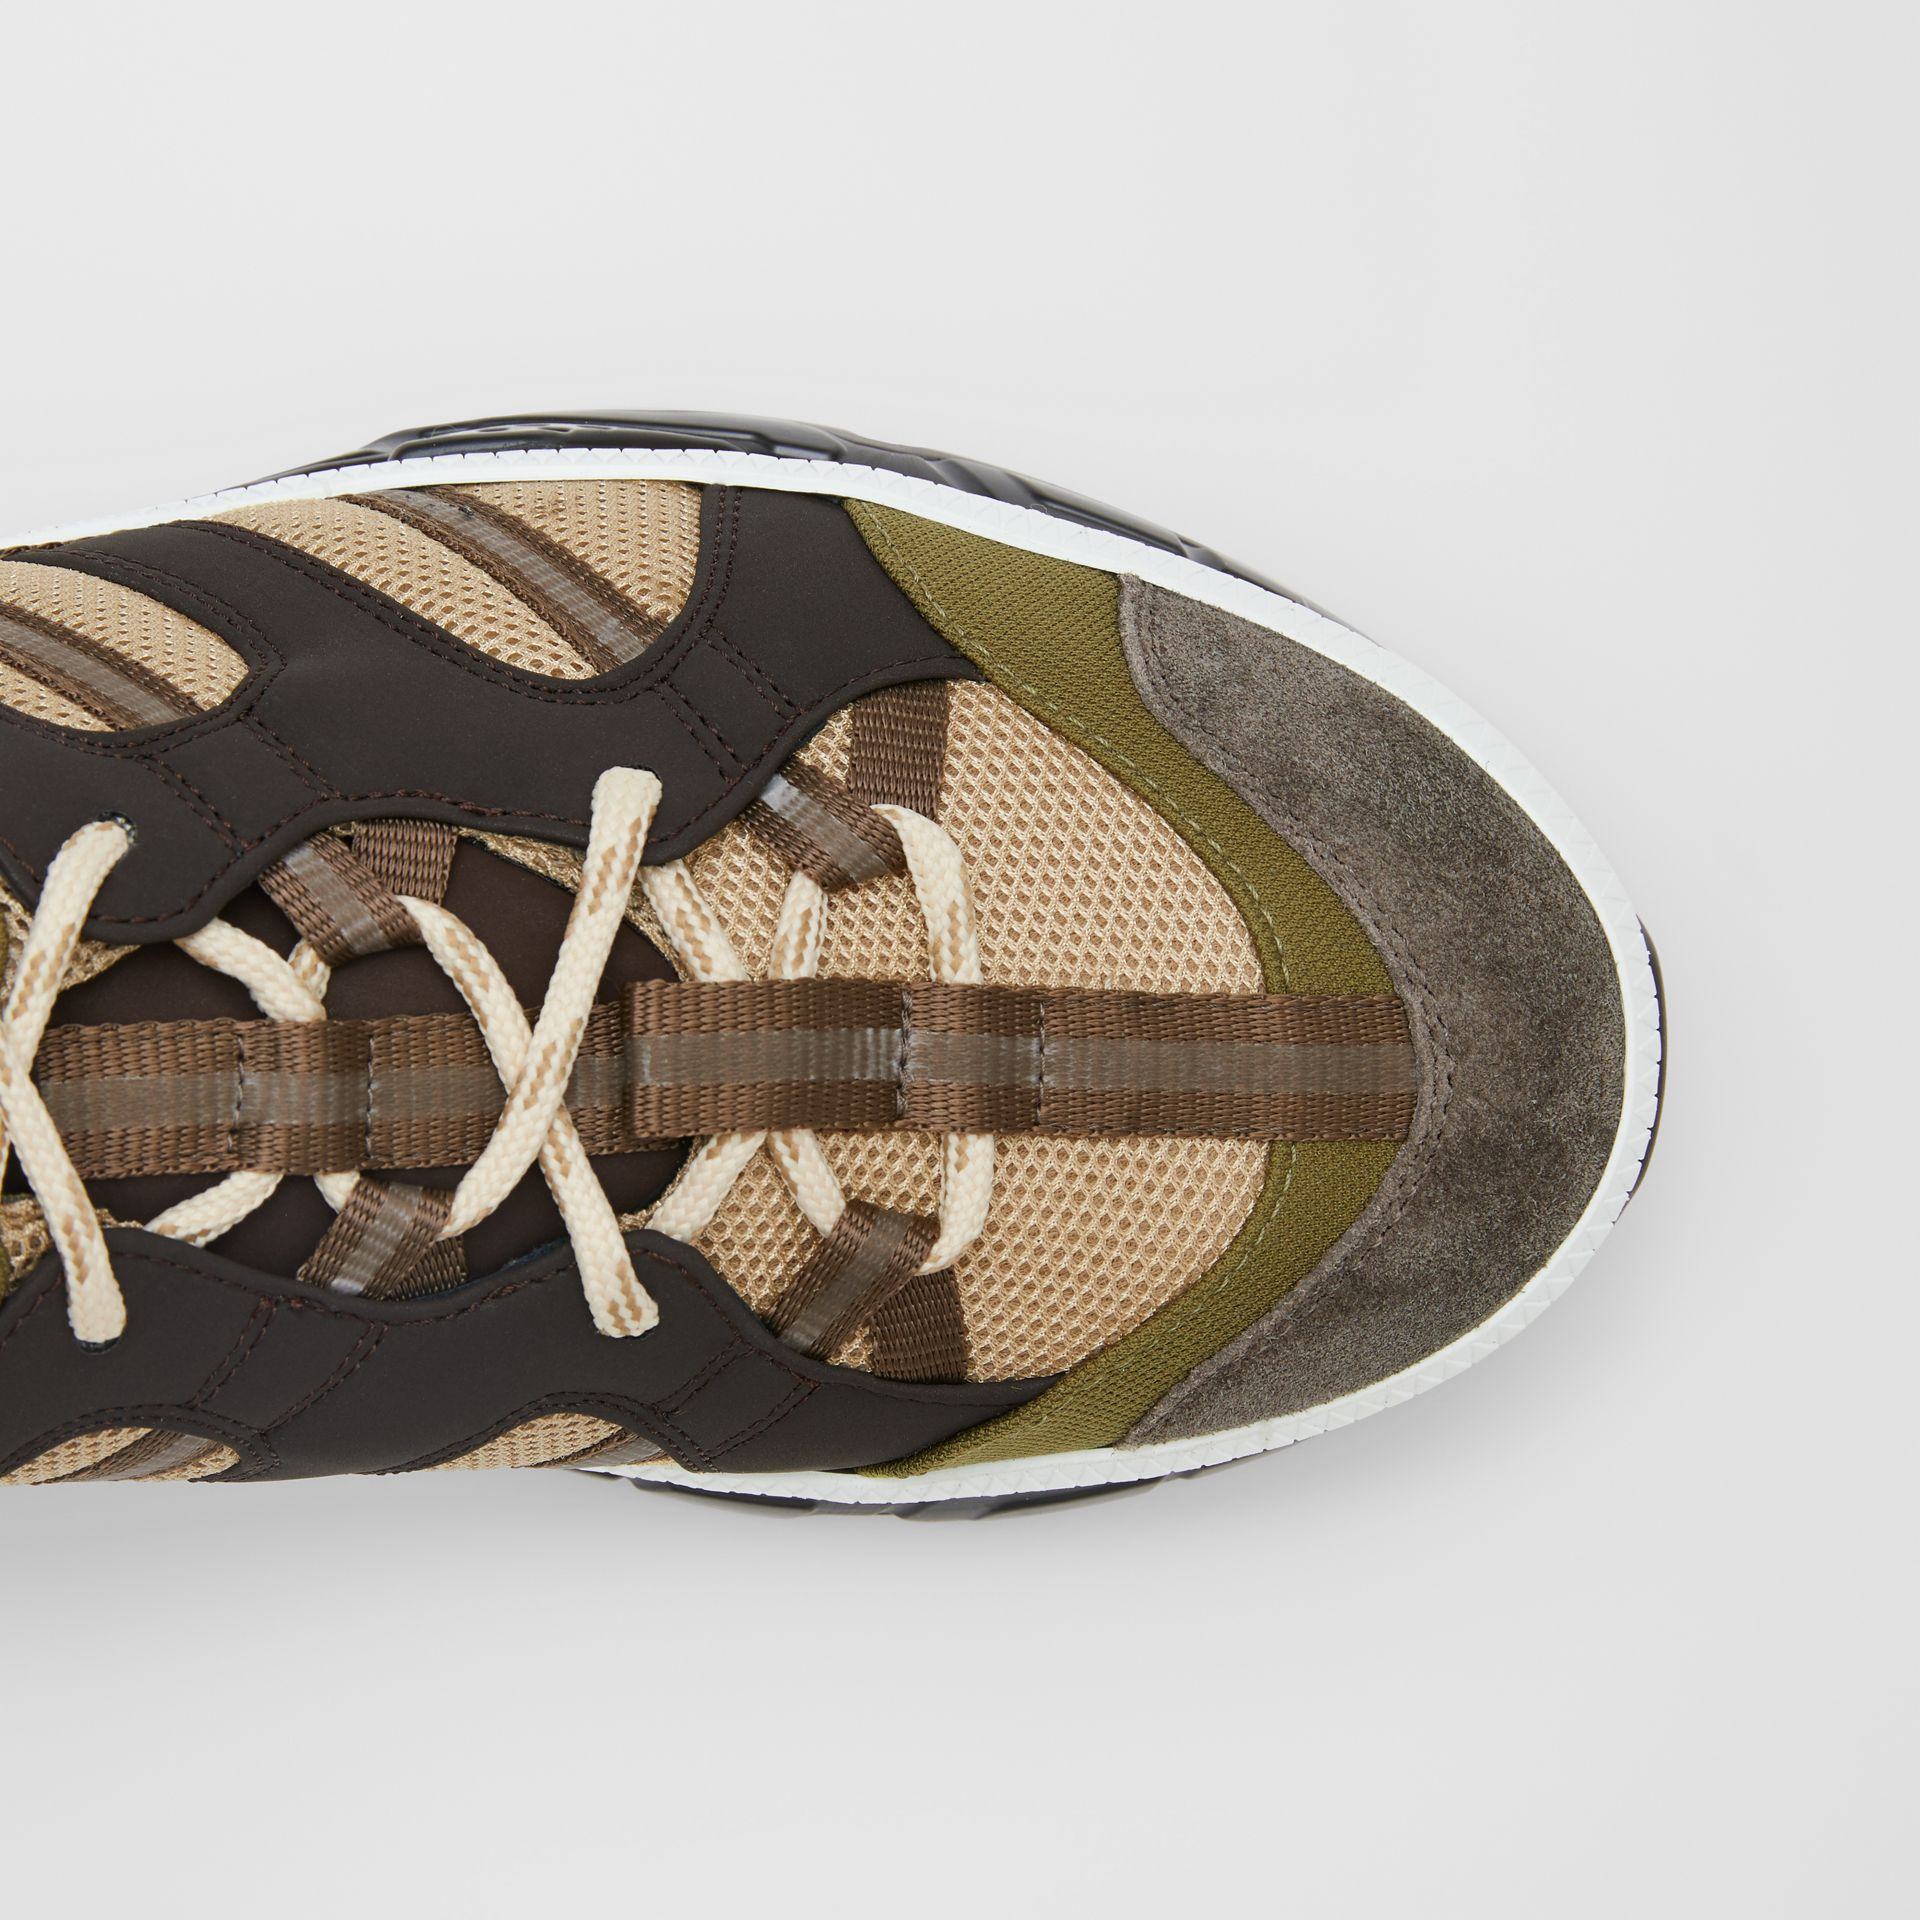 Mesh and Suede Union Sneakers in Khaki / Brown - Men | Burberry Hong Kong S.A.R - gallery image 1